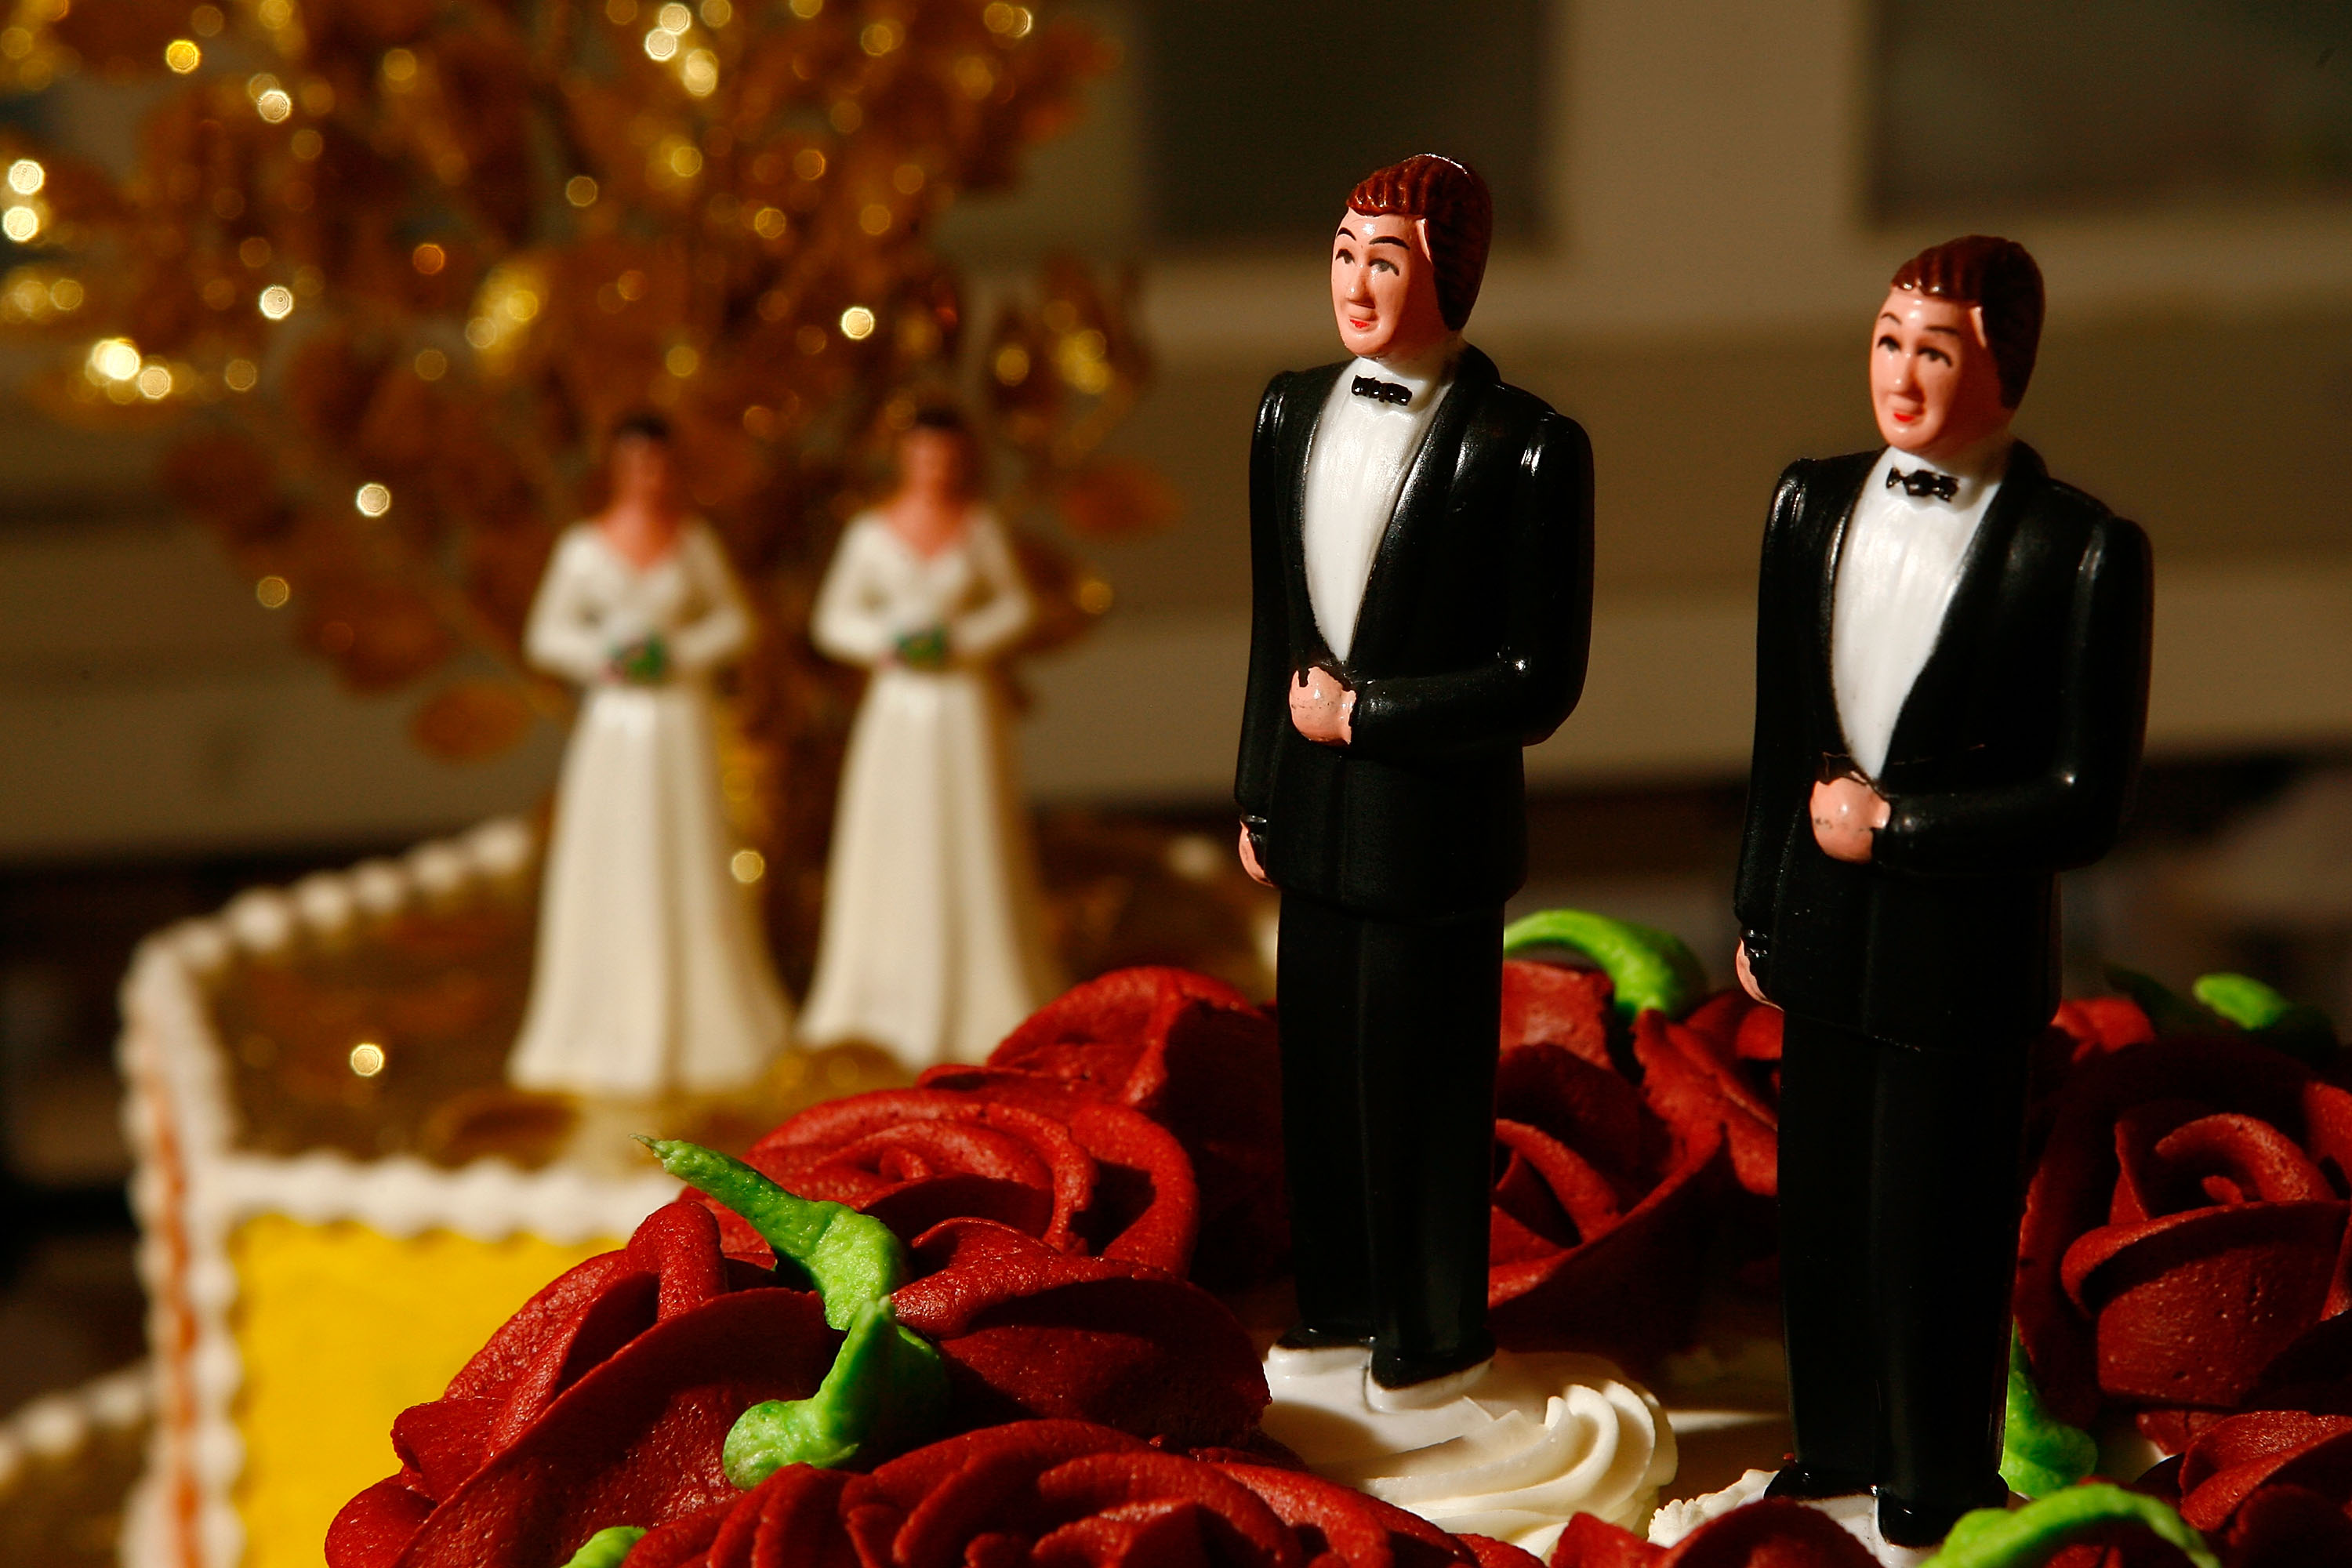 Same-sex wedding cake topper figurines are seen at Cake and Art cake decorators. (Photo by David McNew/Getty Images)